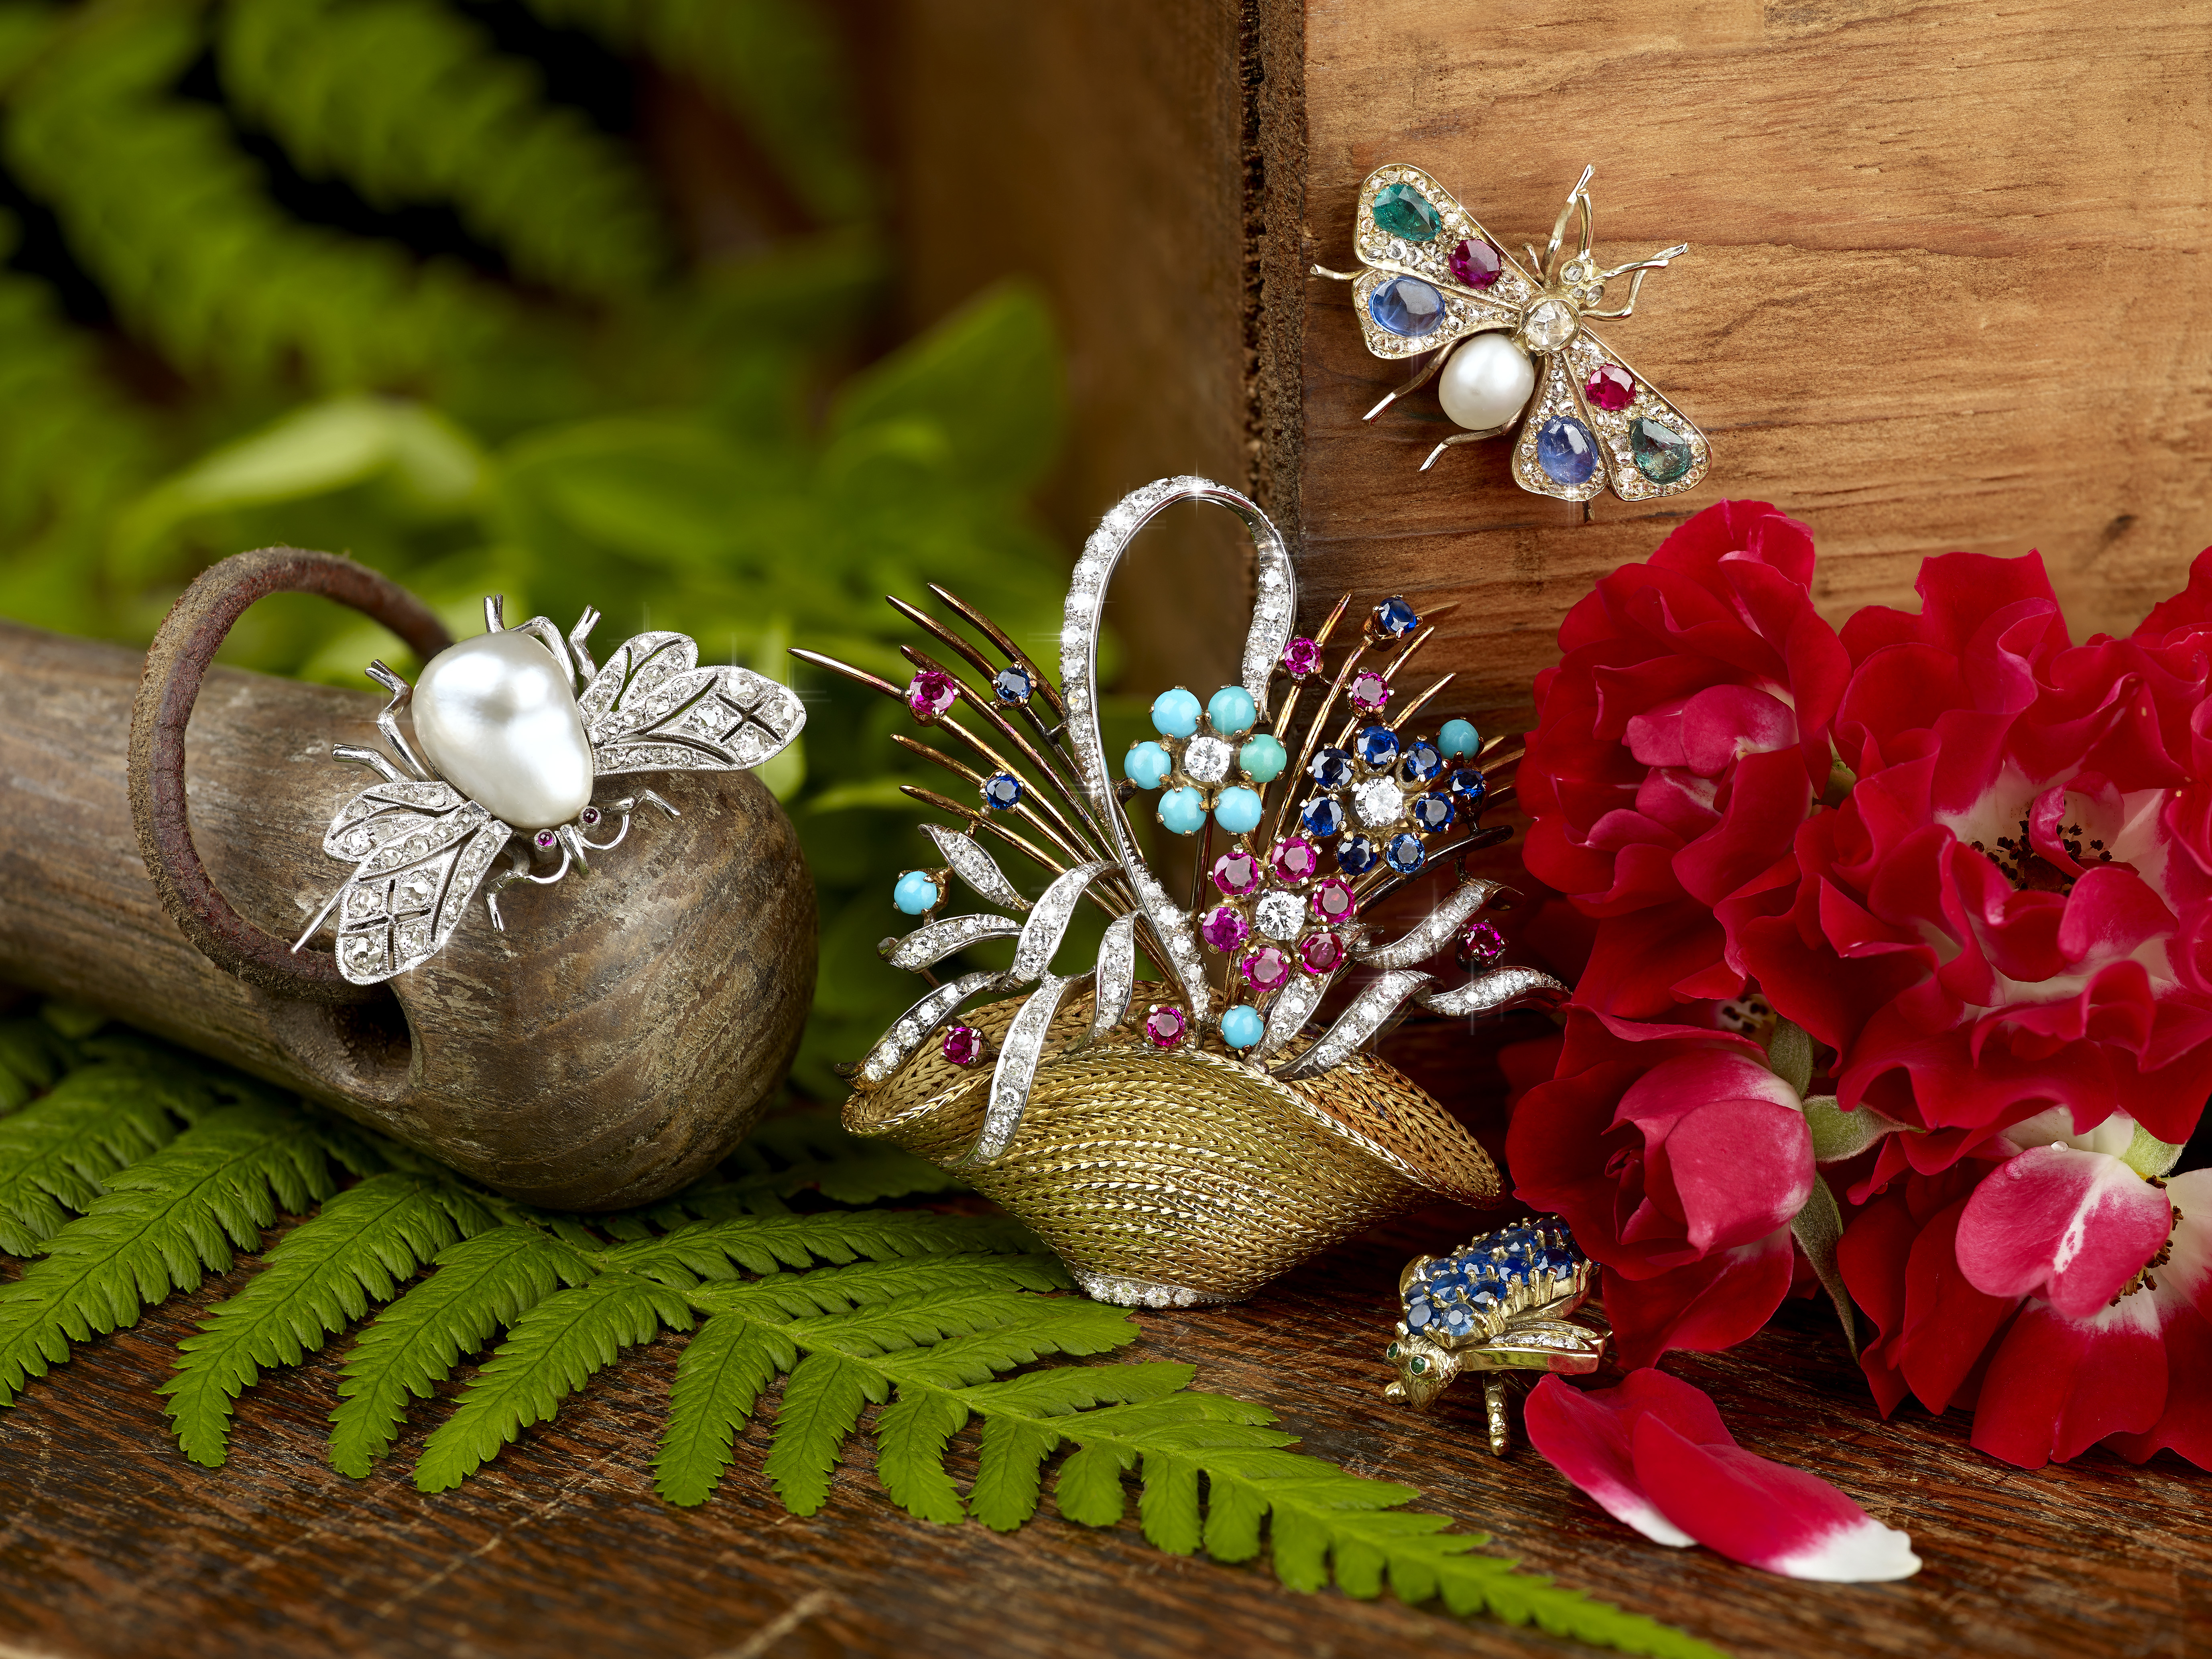 Selection of brooches in Fellows' August sale